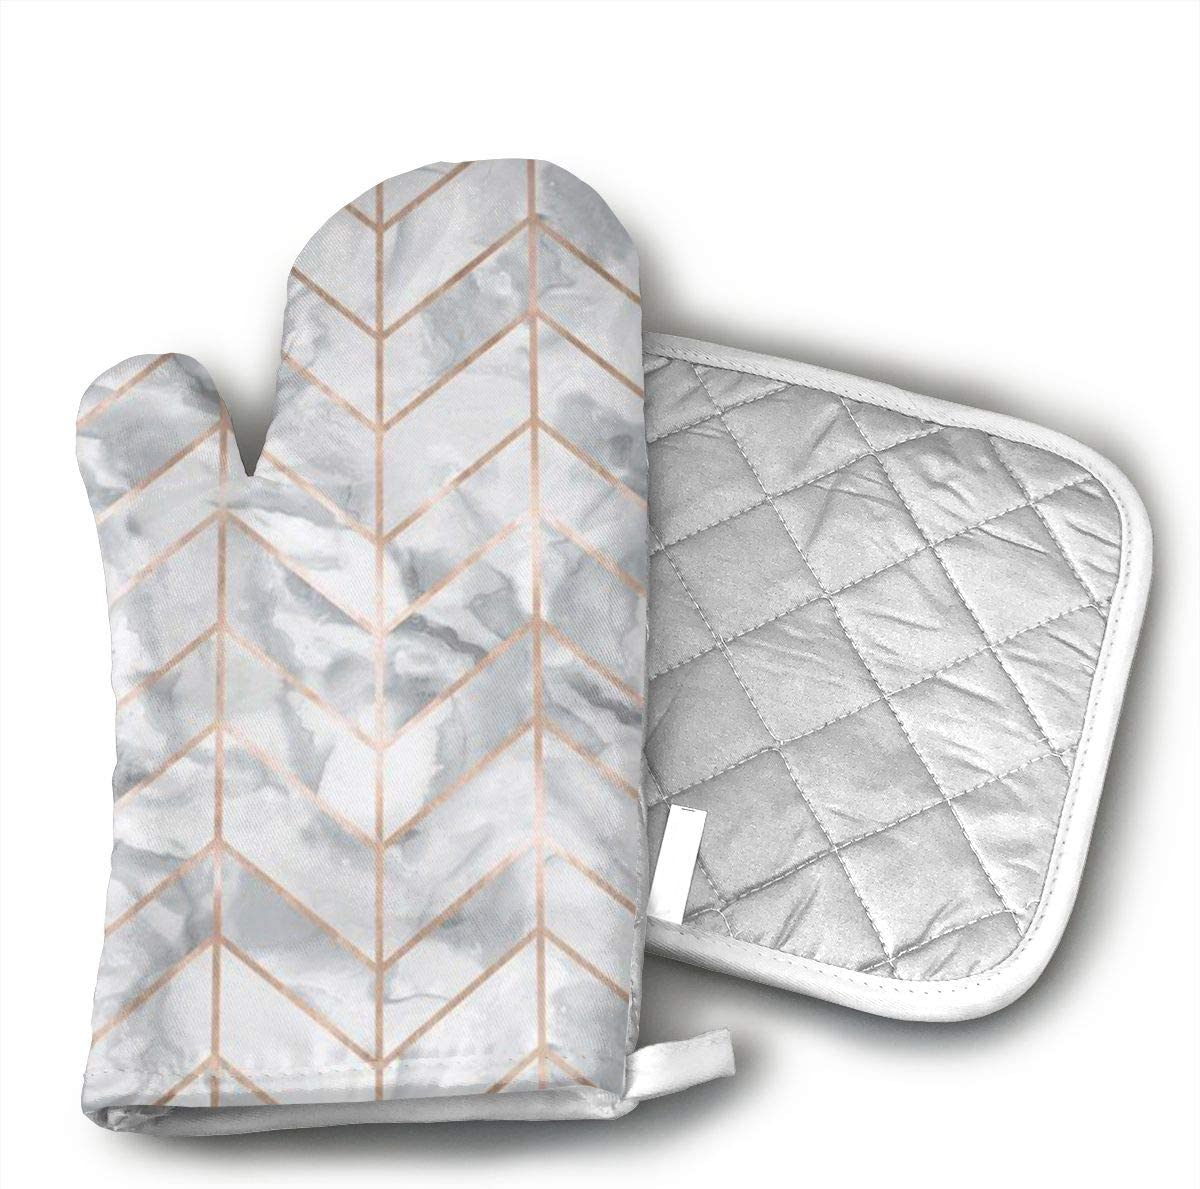 Wiqo9 Marble Herringbone Rose Gold Gilt Design Oven Mitts and Pot Holders Kitchen Mitten Cooking Gloves,Cooking, Baking, BBQ.